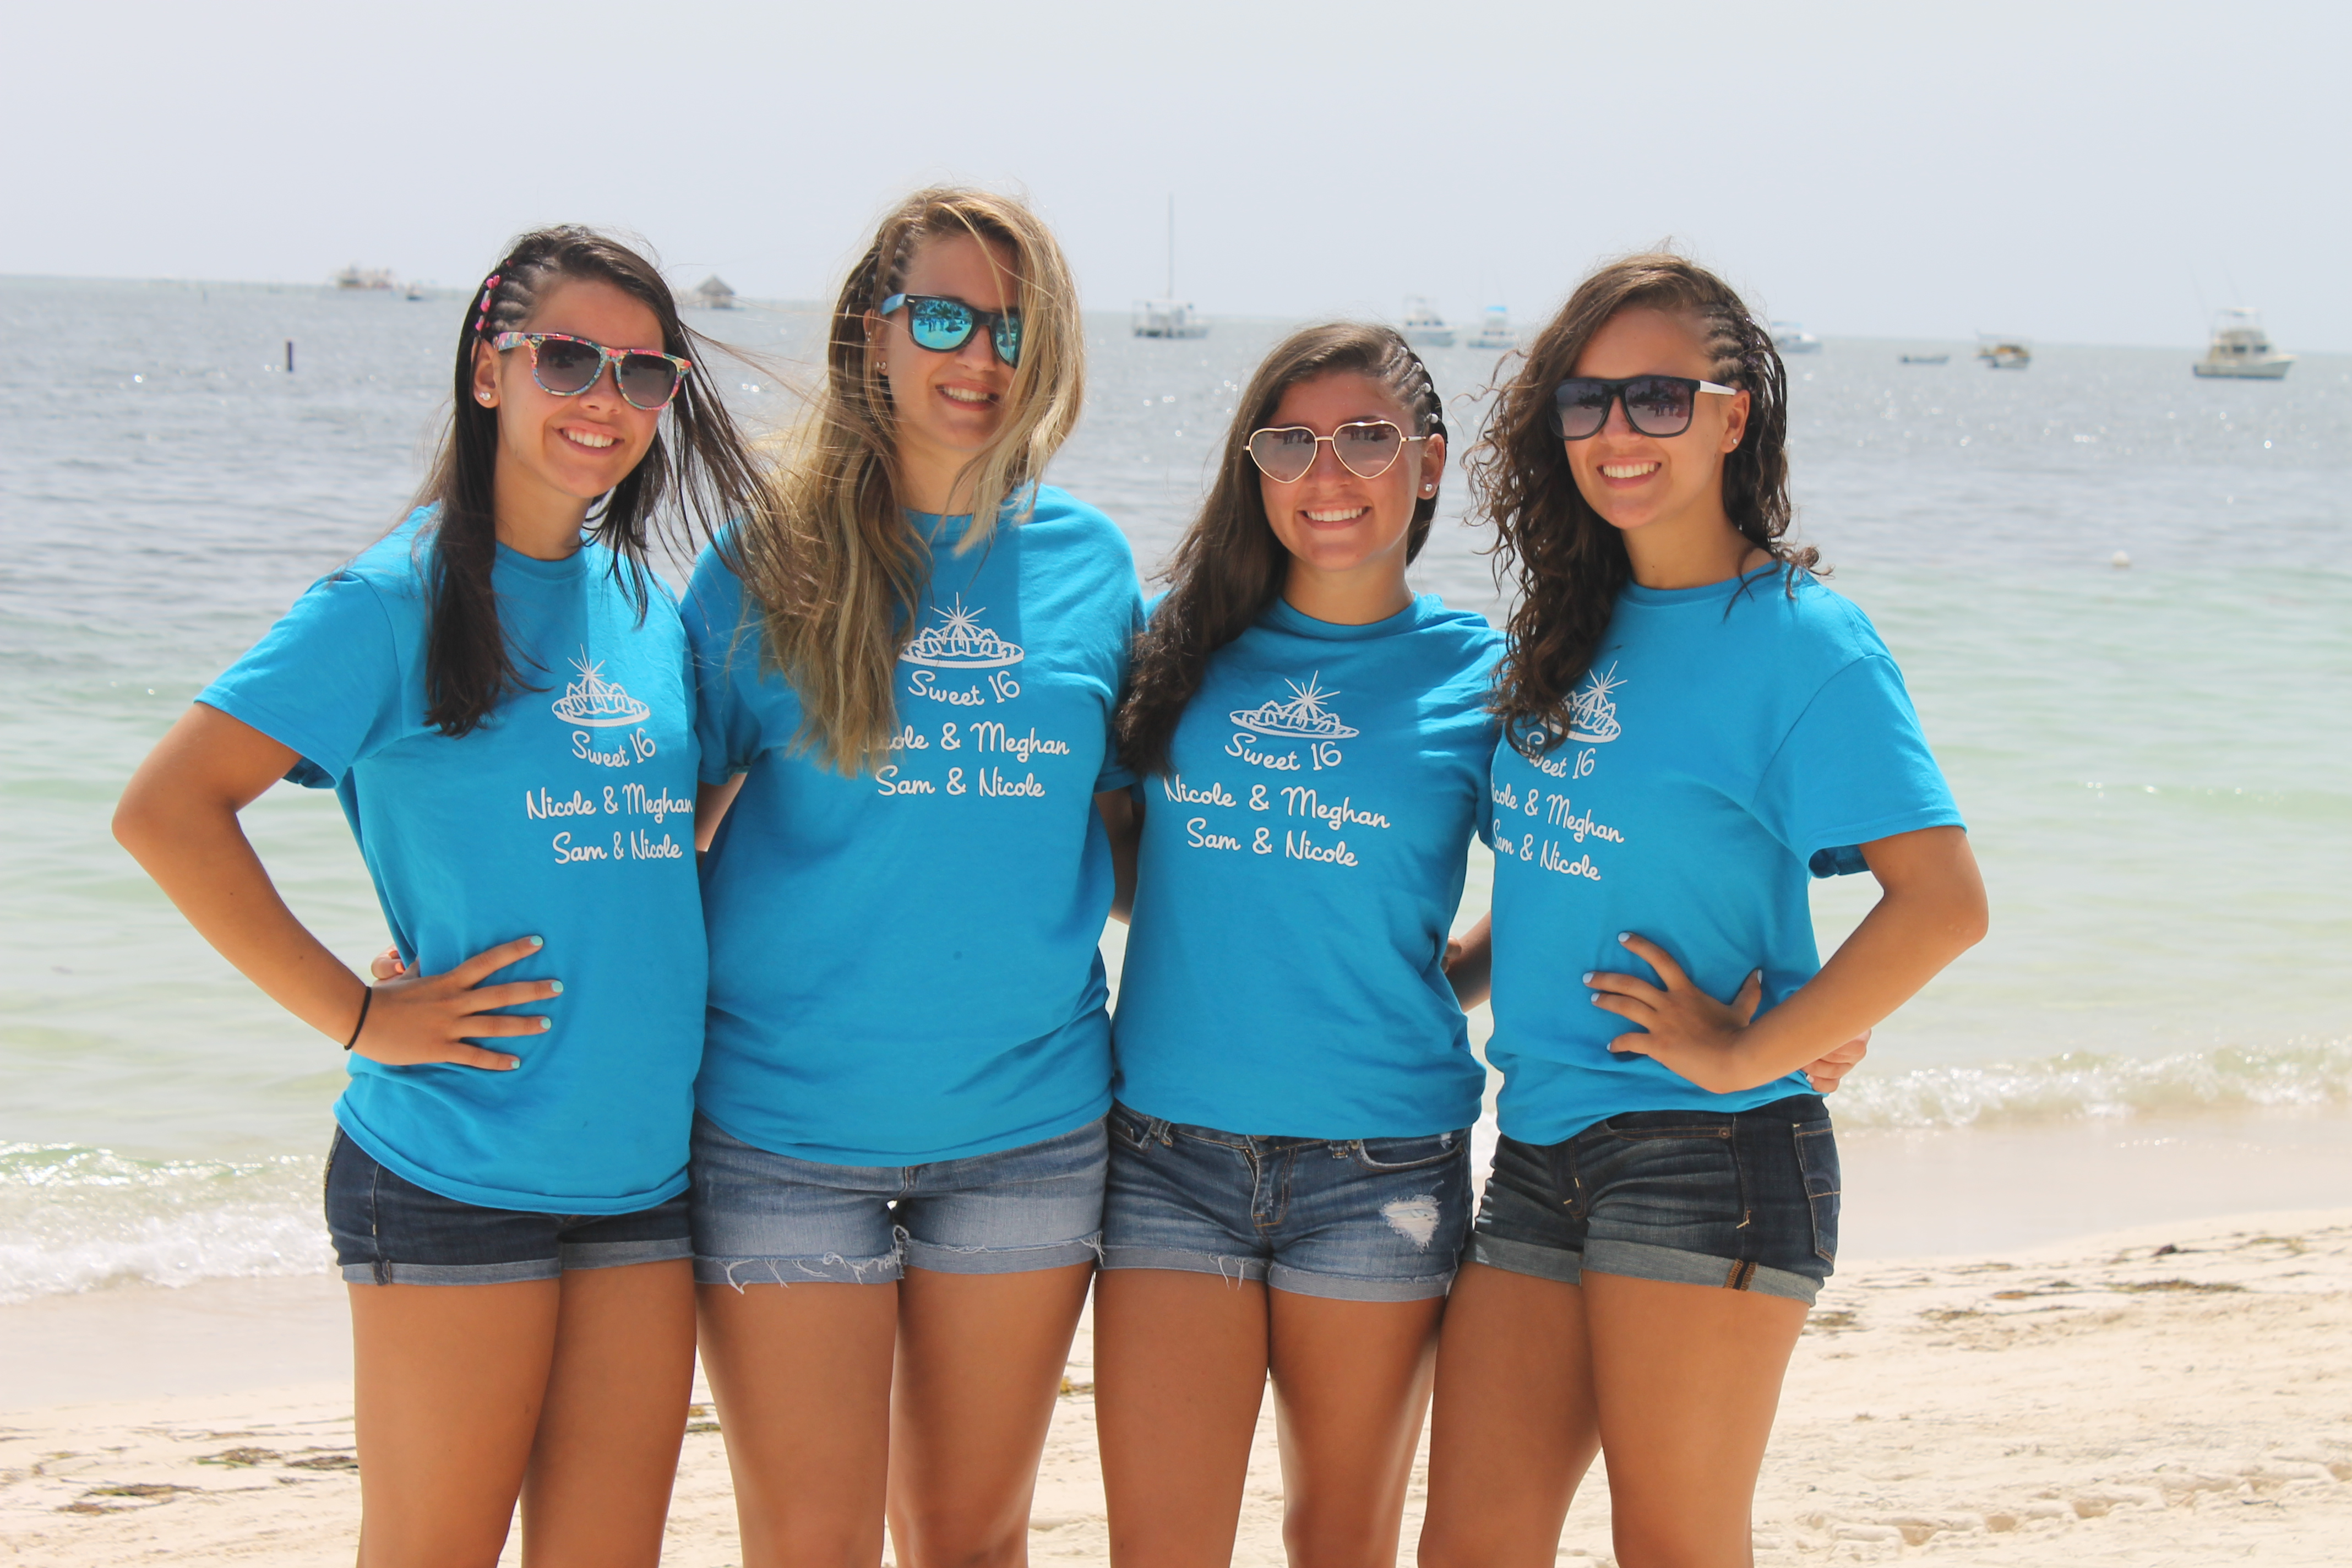 Custom t shirts for sweet 16 in punta cana shirt design for Great short vacation ideas